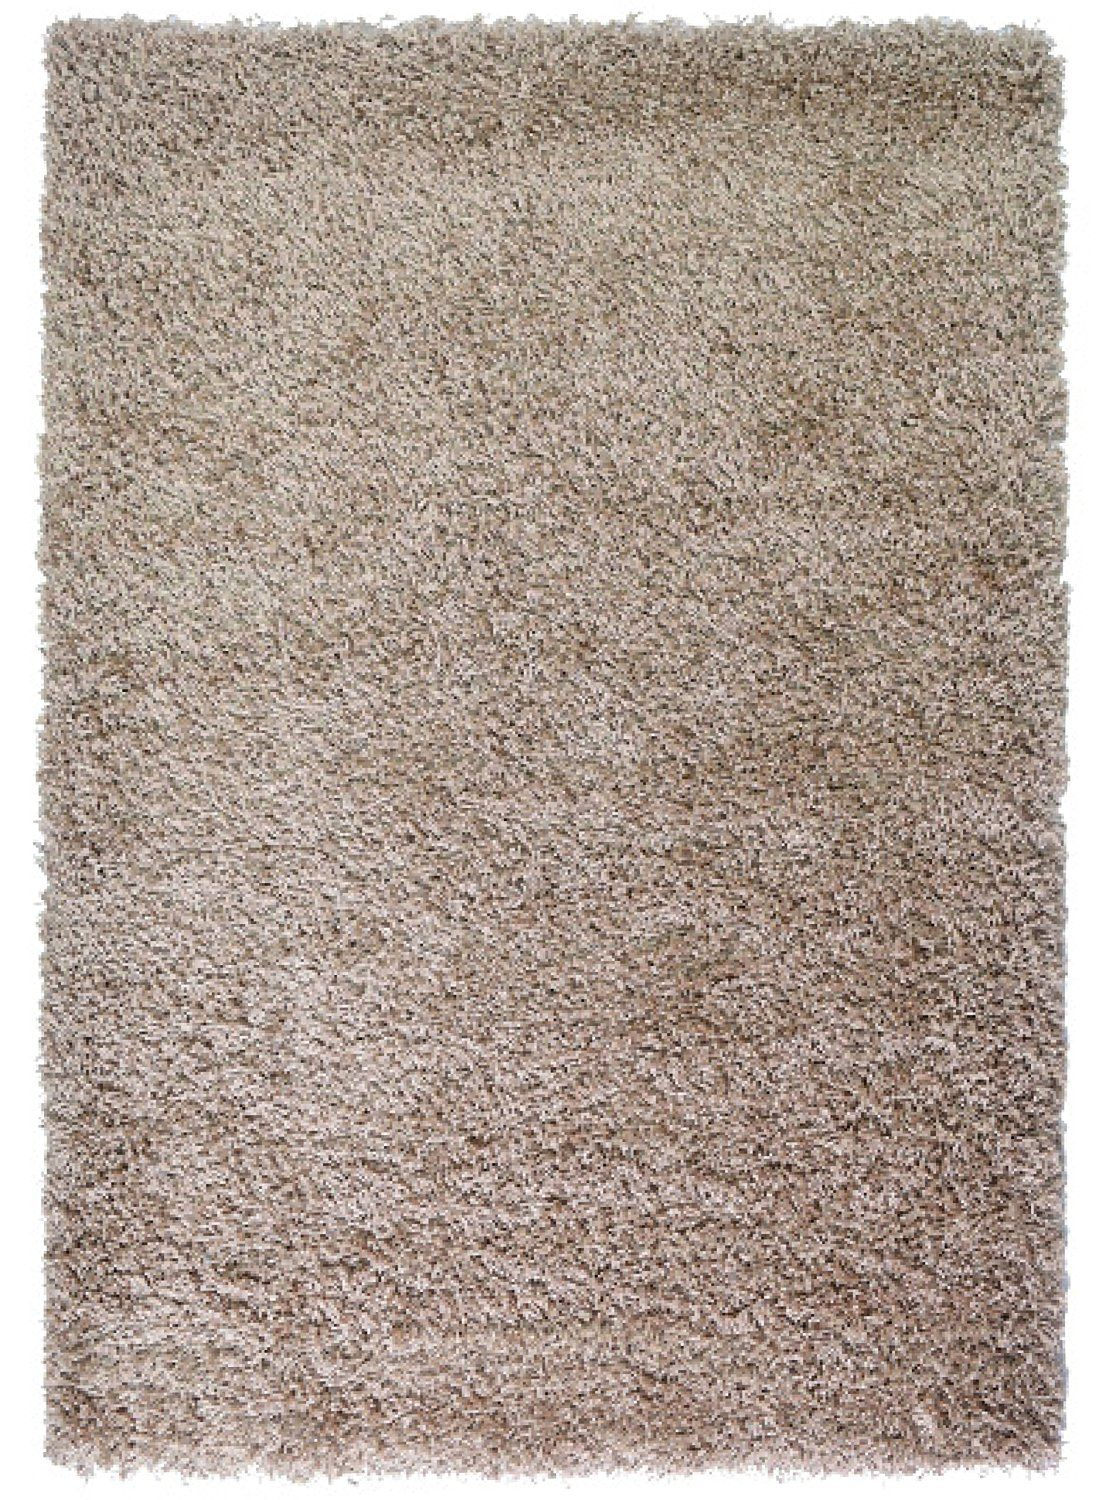 Extra Large Rug 5cm Thick Shag Pile Soft Shaggy Area Rugs